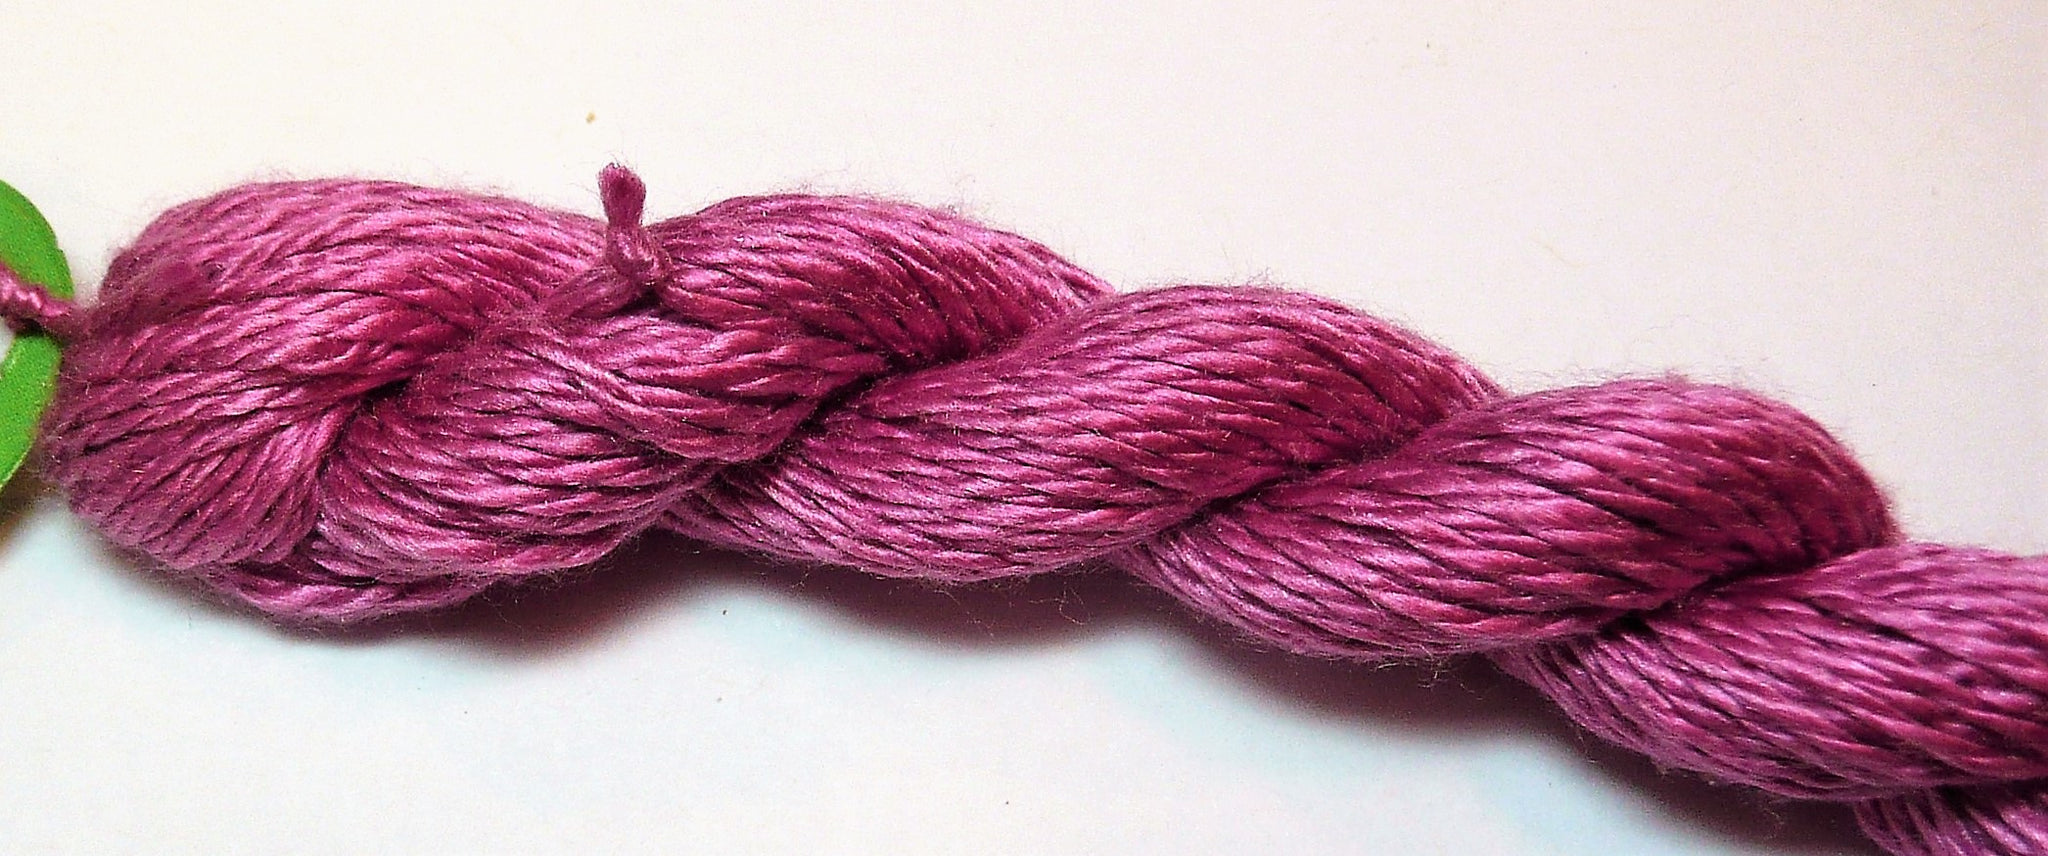 Vineyard Classic 100 /% Silk Lilac pink violet collection needlepoint embroidery